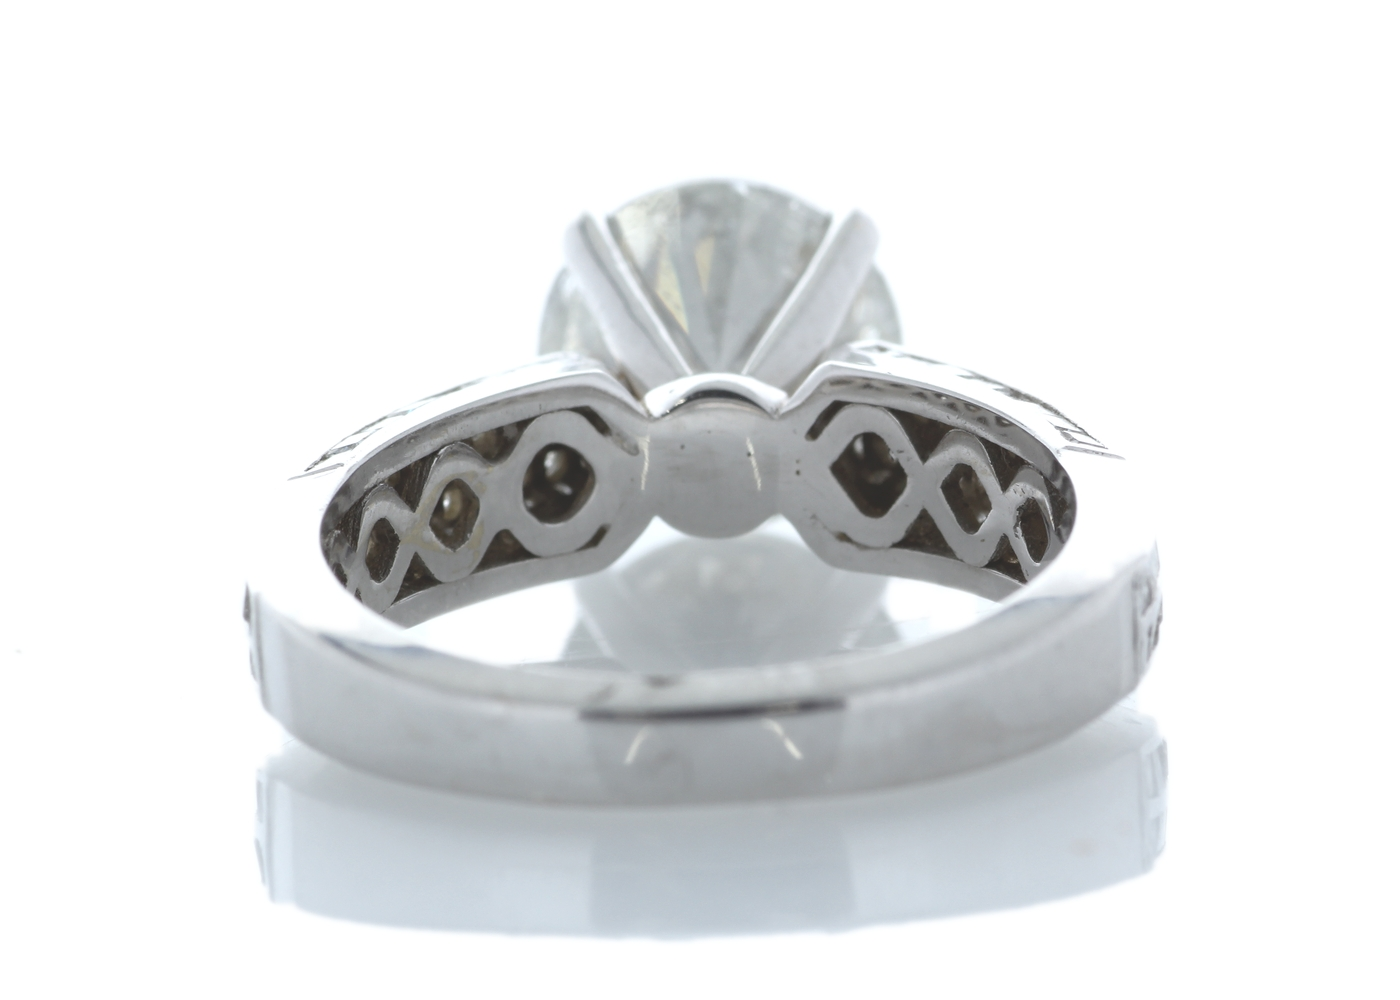 Lot 28 - 18ct White Gold Stone Set Shoulders Diamond Ring 4.51 Carats